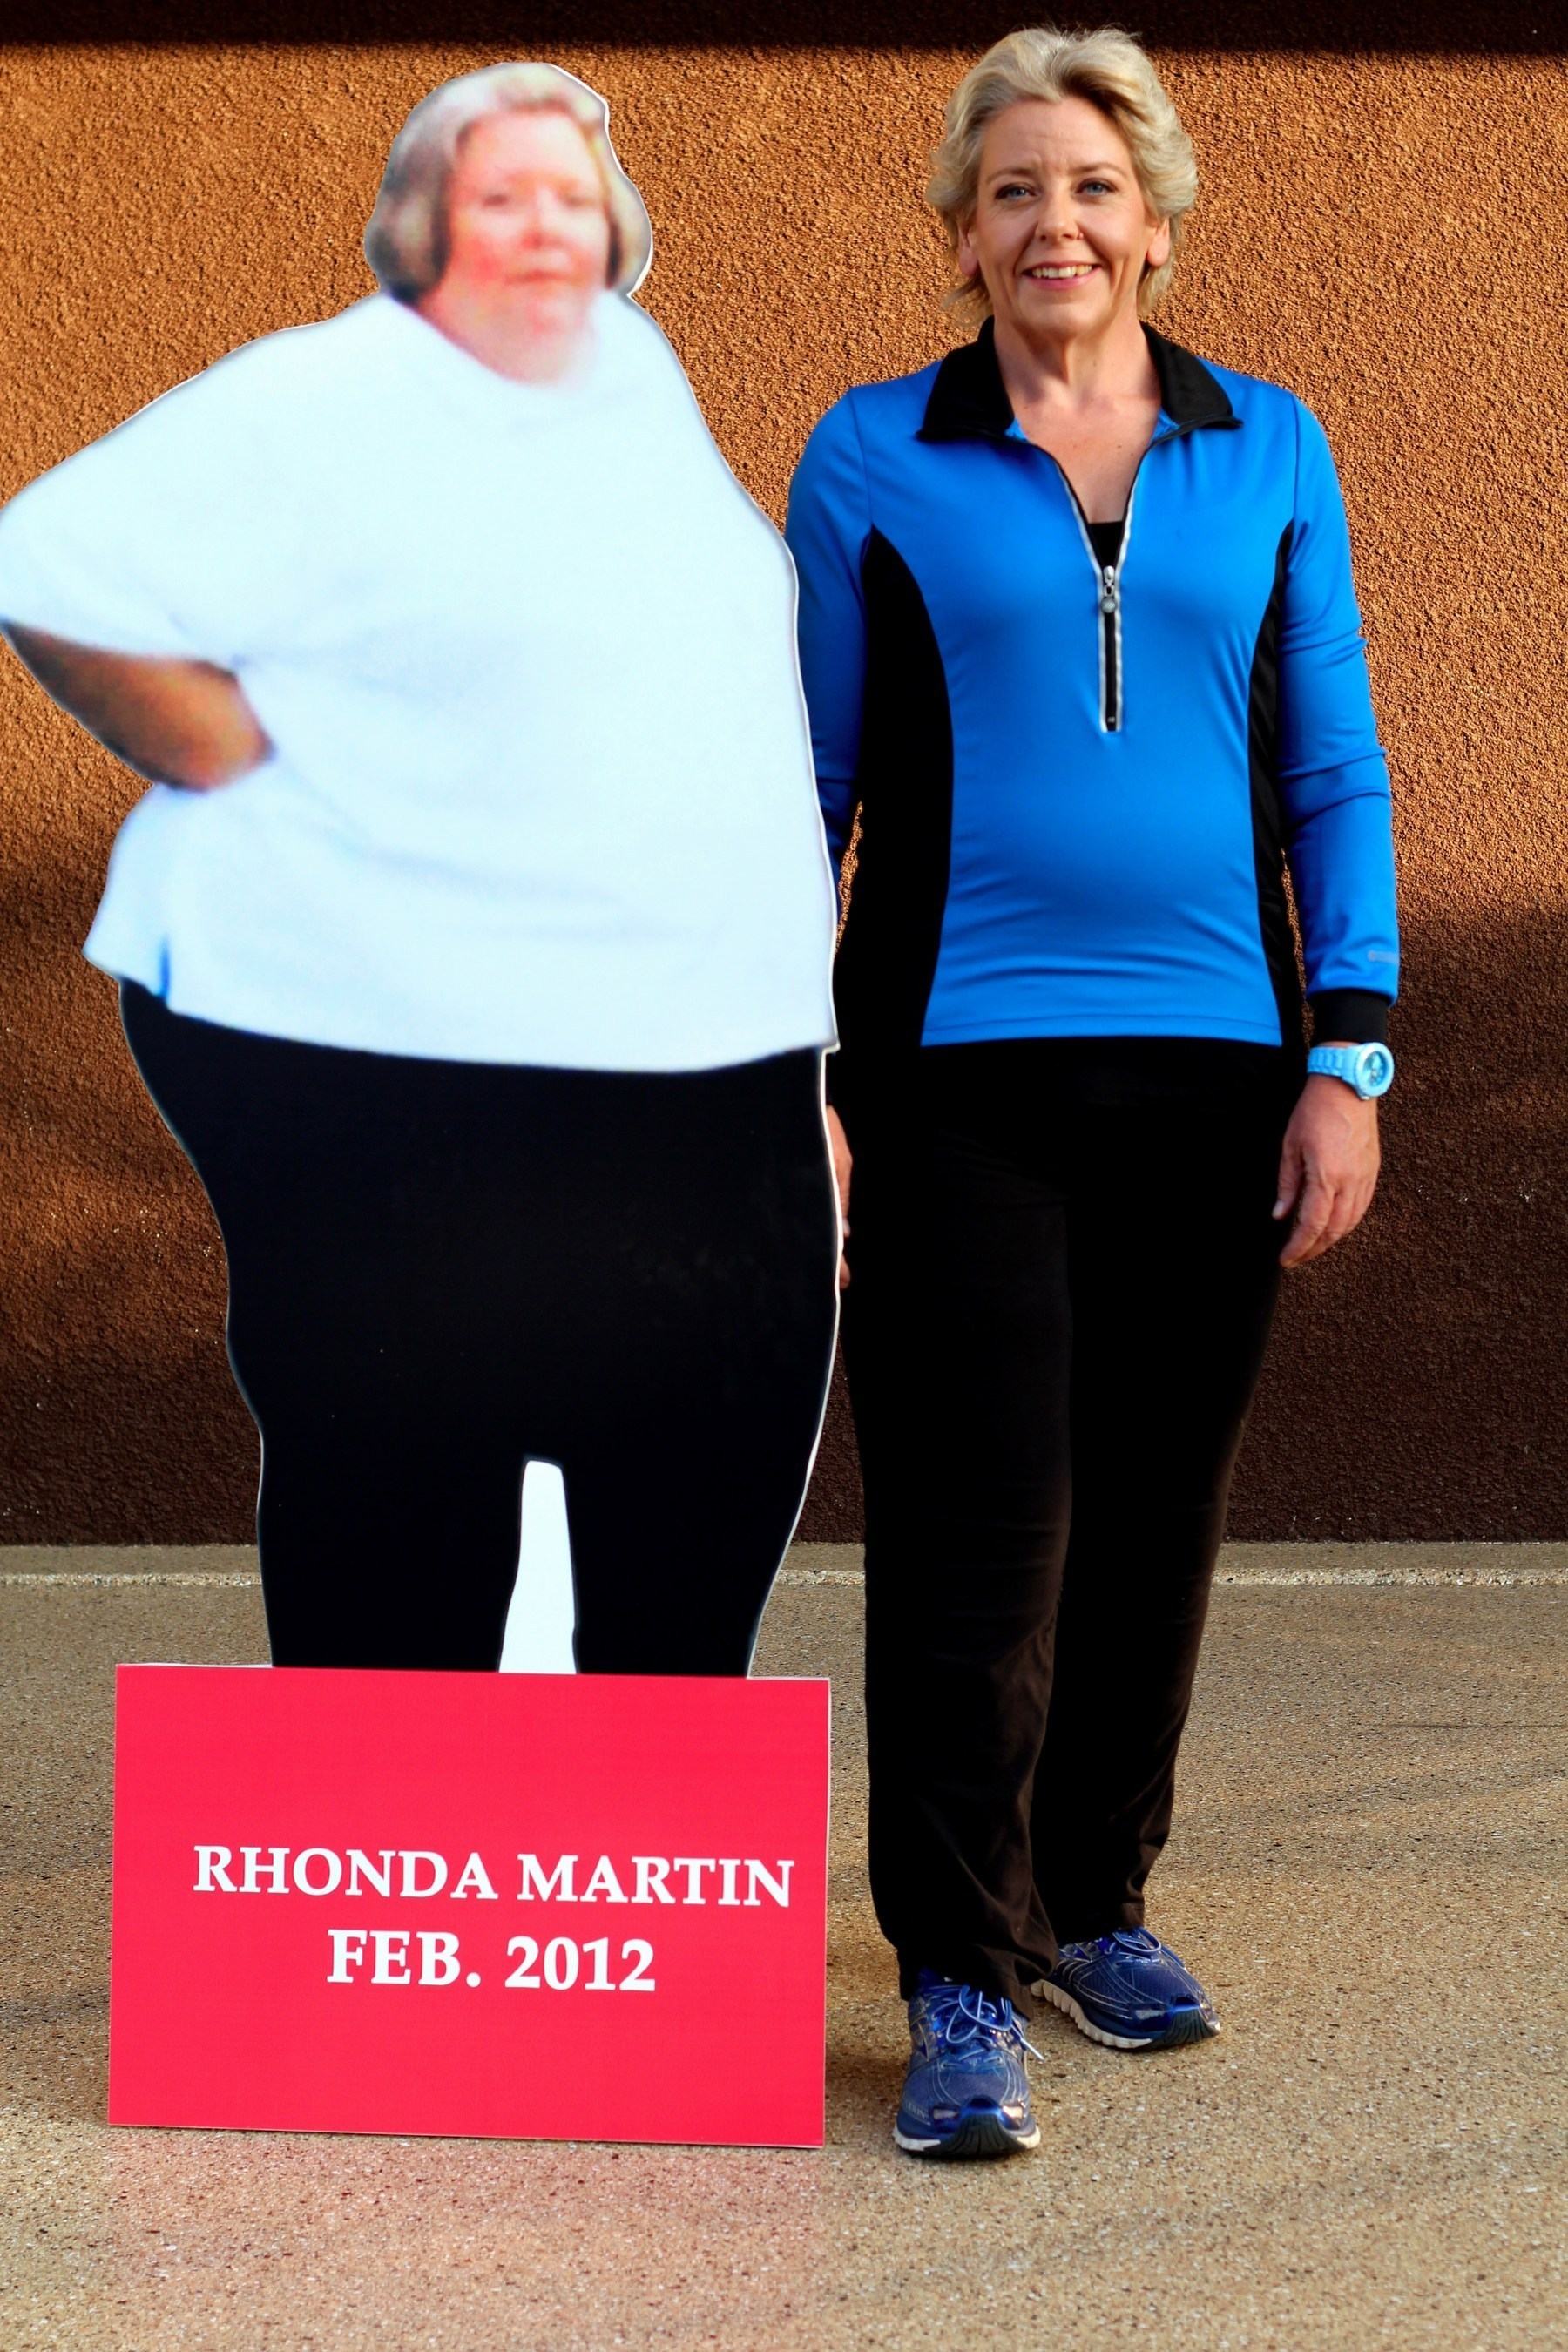 With the help of her Pedego electric bike, Rhonda Martin dropped 277 pounds, all while having fun!